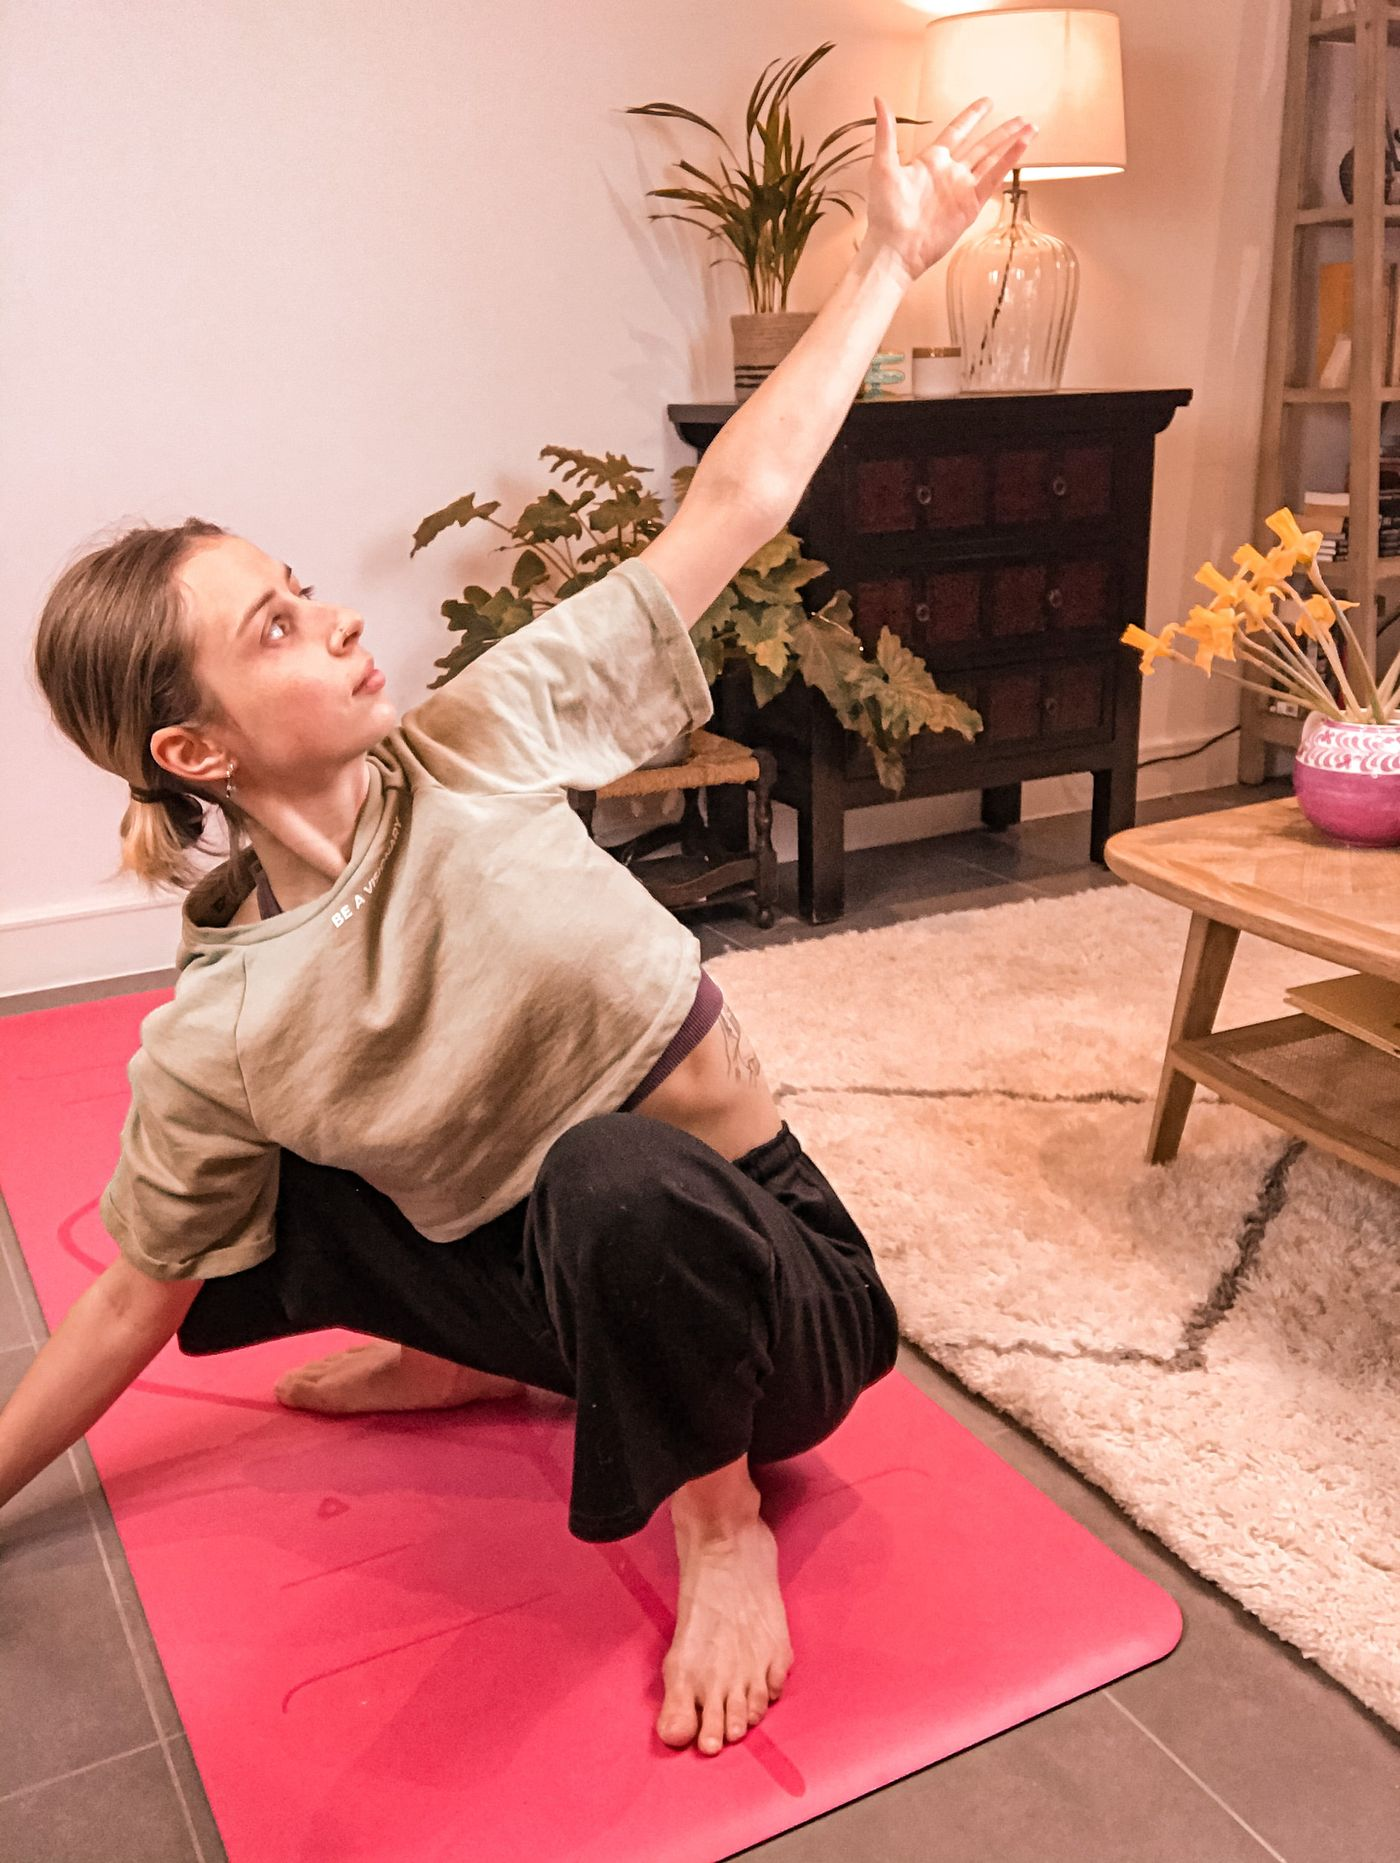 This is your quick reminder to schedule some 'me-time' and prep to slow down over this weekend.🧘🏼 If you are finding it tough try this: >breath in for a count of 4 >hold for a count of 4 >exhale for a count of 6 repeat x3 > helps to activate the parasympathetic nervous system, decrease anxiety and stress >>Class Details: https://bua.fit/class/WO3EjUILGOu3